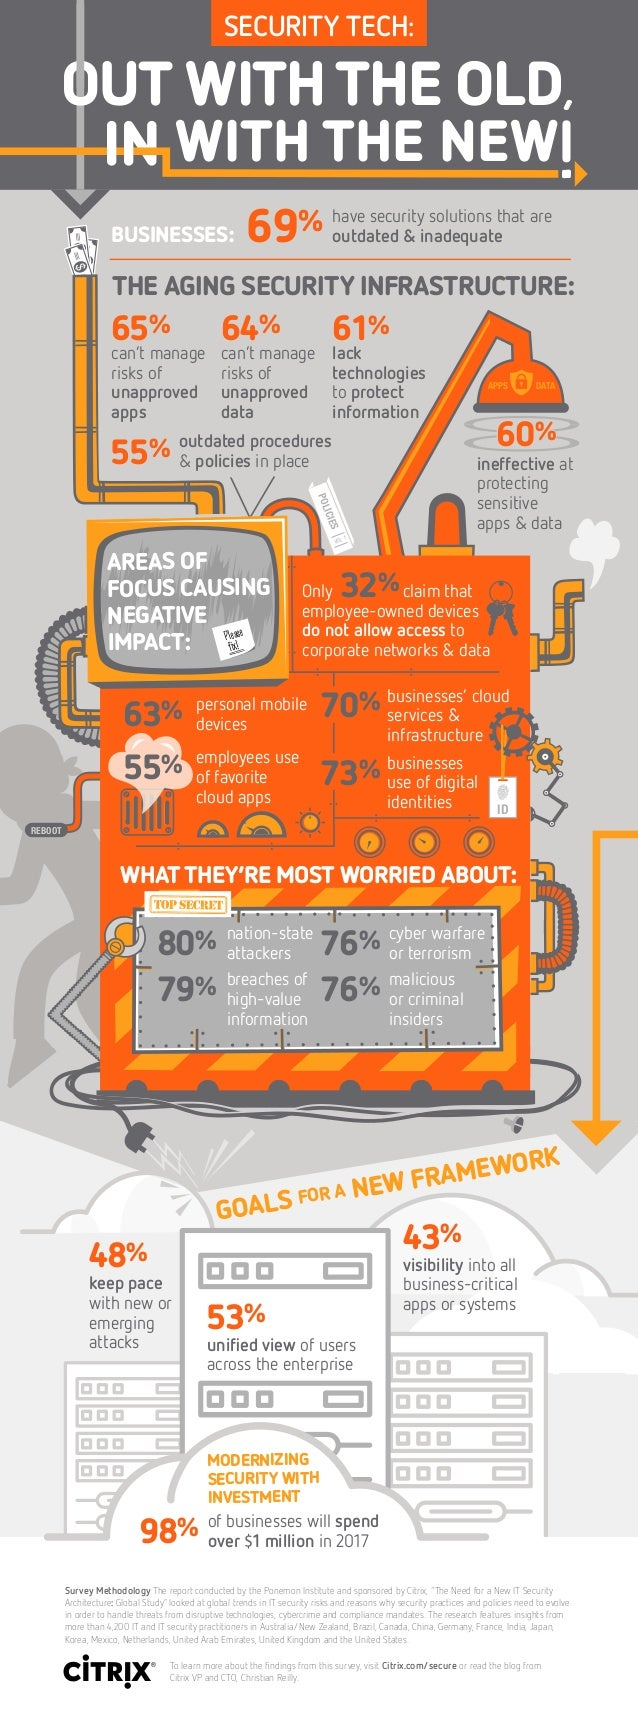 REBOOT 69% have security solutions that are outdated & inadequate 65% can't manage risks of unapproved apps employee-owned...